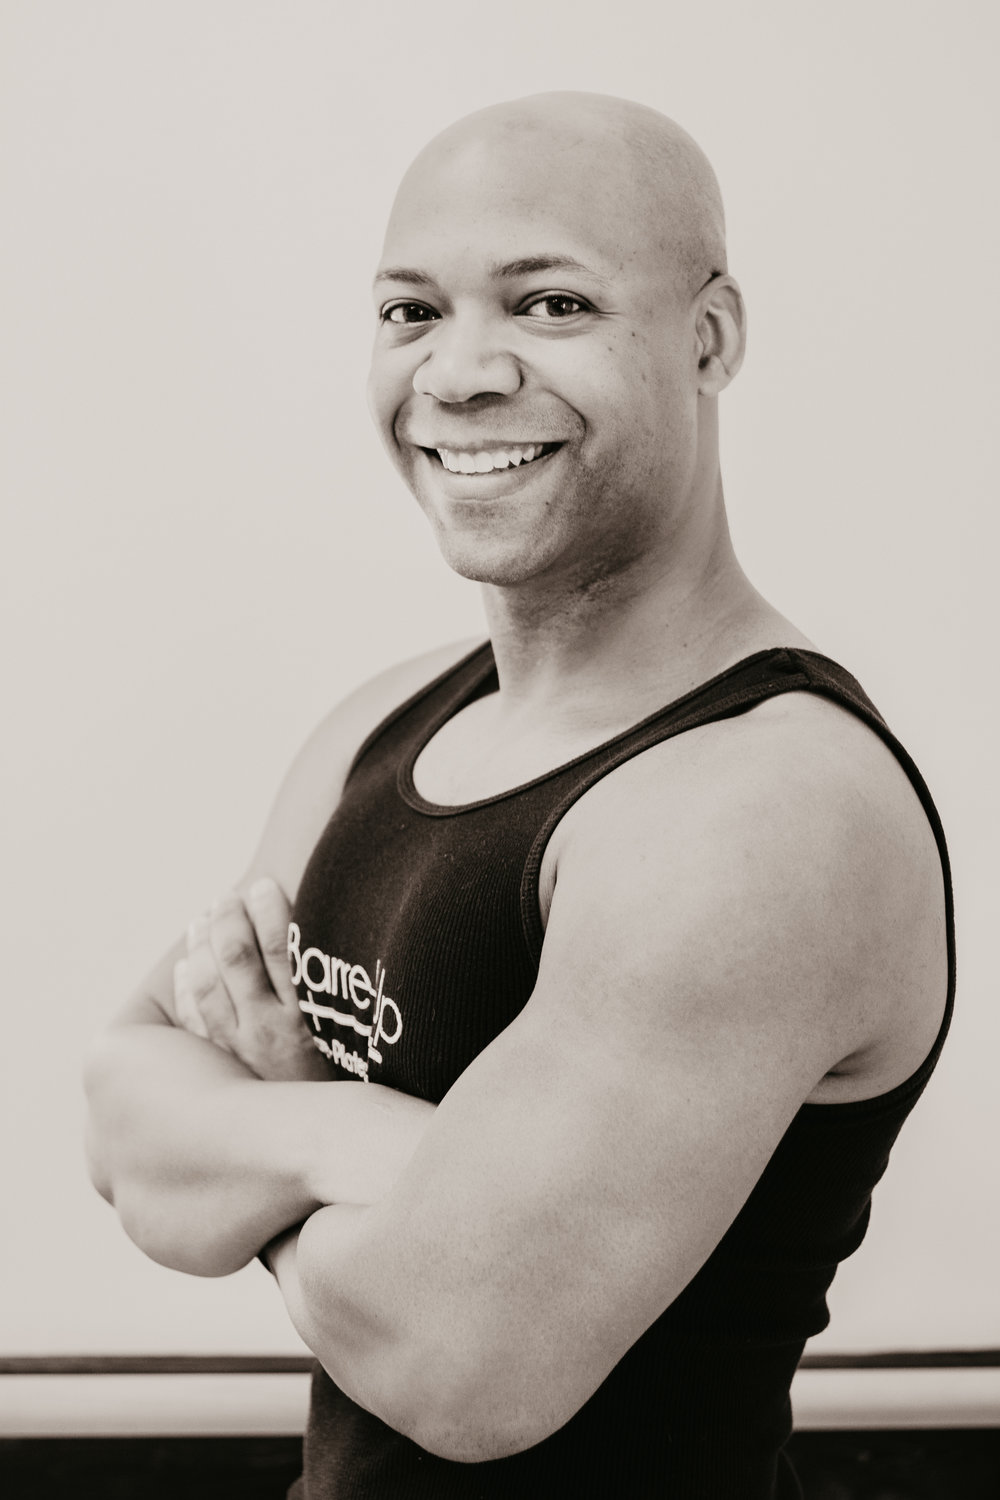 Byron J. - Byron is a native of Gainesville, FL who was raised in Charlotte and is a NC State graduate (Go Wolfpack!!)! He's been a law firm manager for 13 years and also does acting and modeling. Fitness and dancing have always been important to him, so 4 years ago, he decided to leap into Fitness instructing and has never looked back! Byron's excited to join the Barre Up family and to be able to